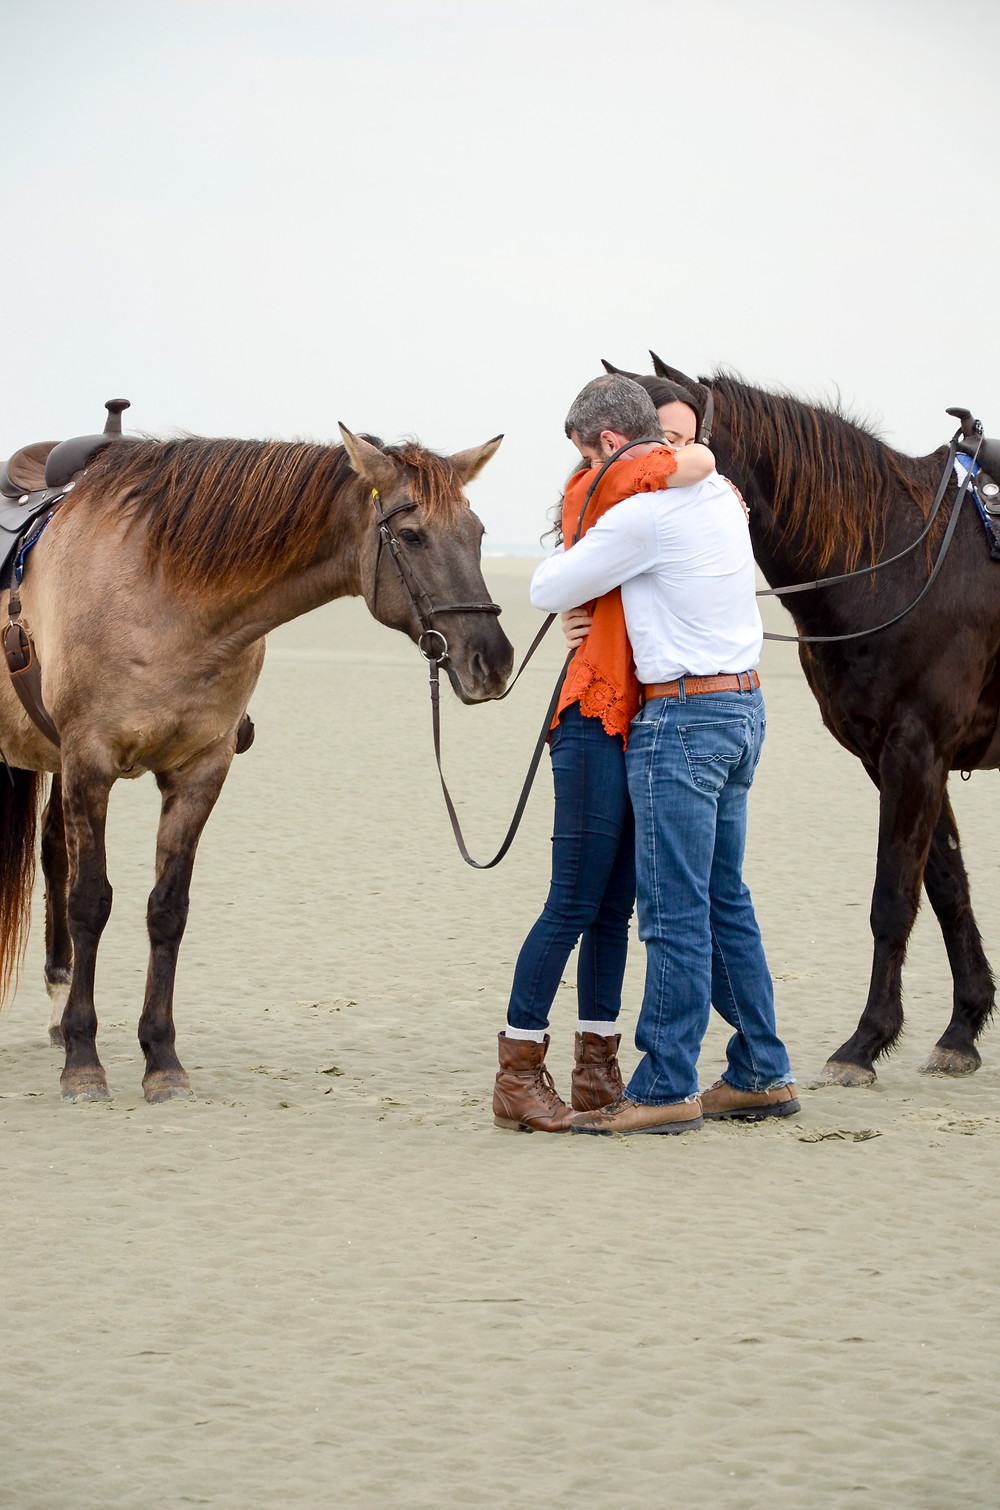 Surprise Engagement Proposal at Seabrook Island Equestrian Center